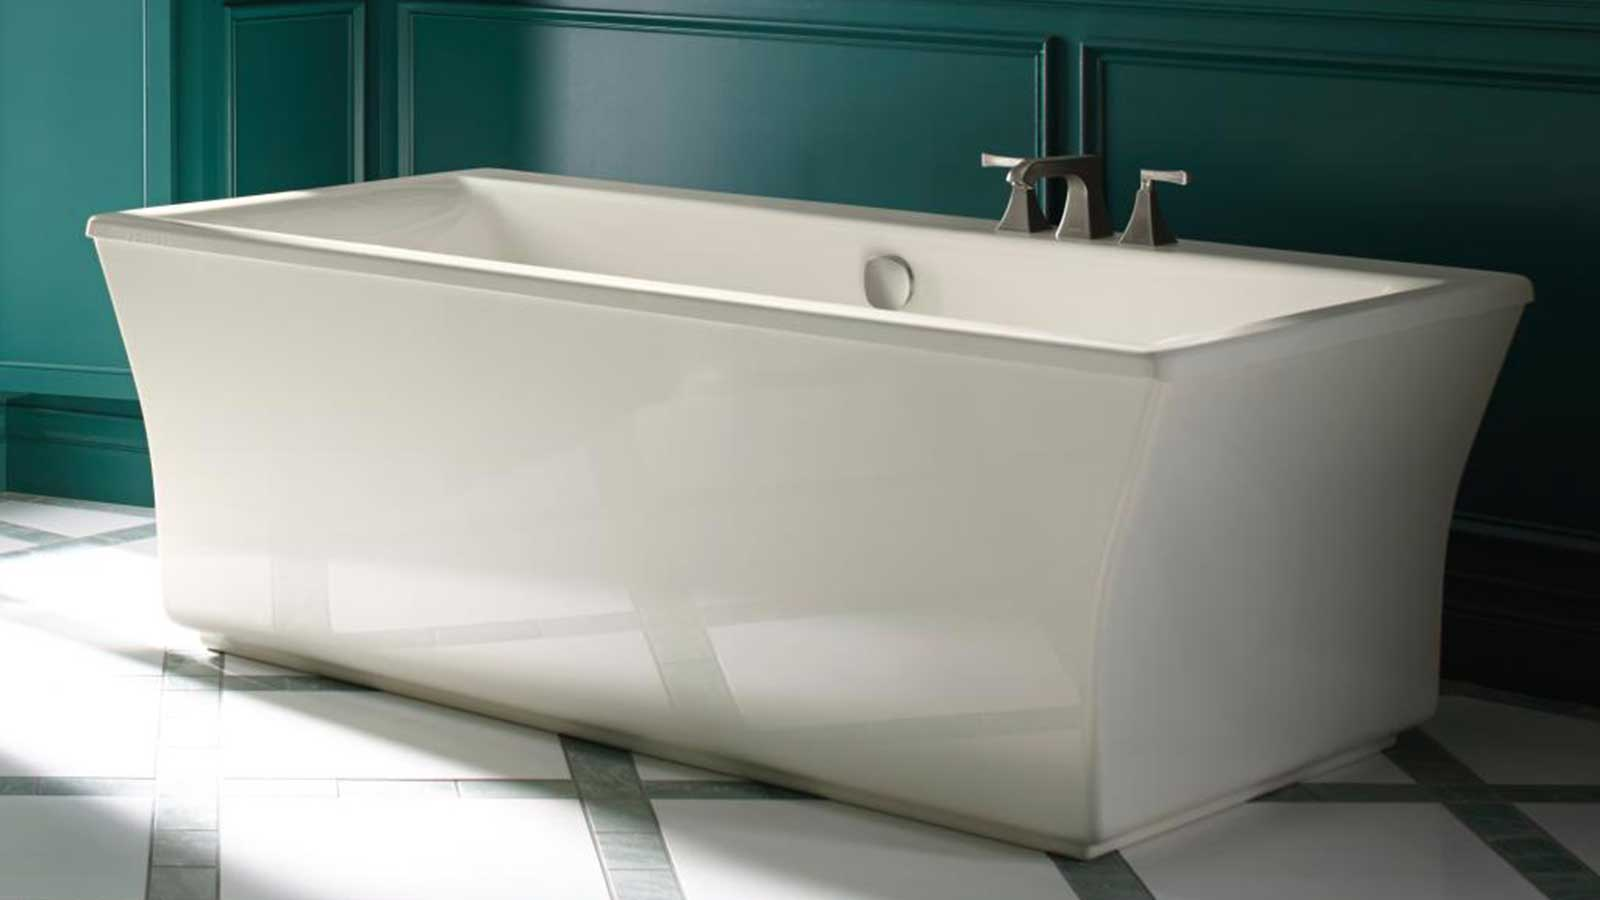 Bathtub Buying Guide - How To Choose A Bathtub